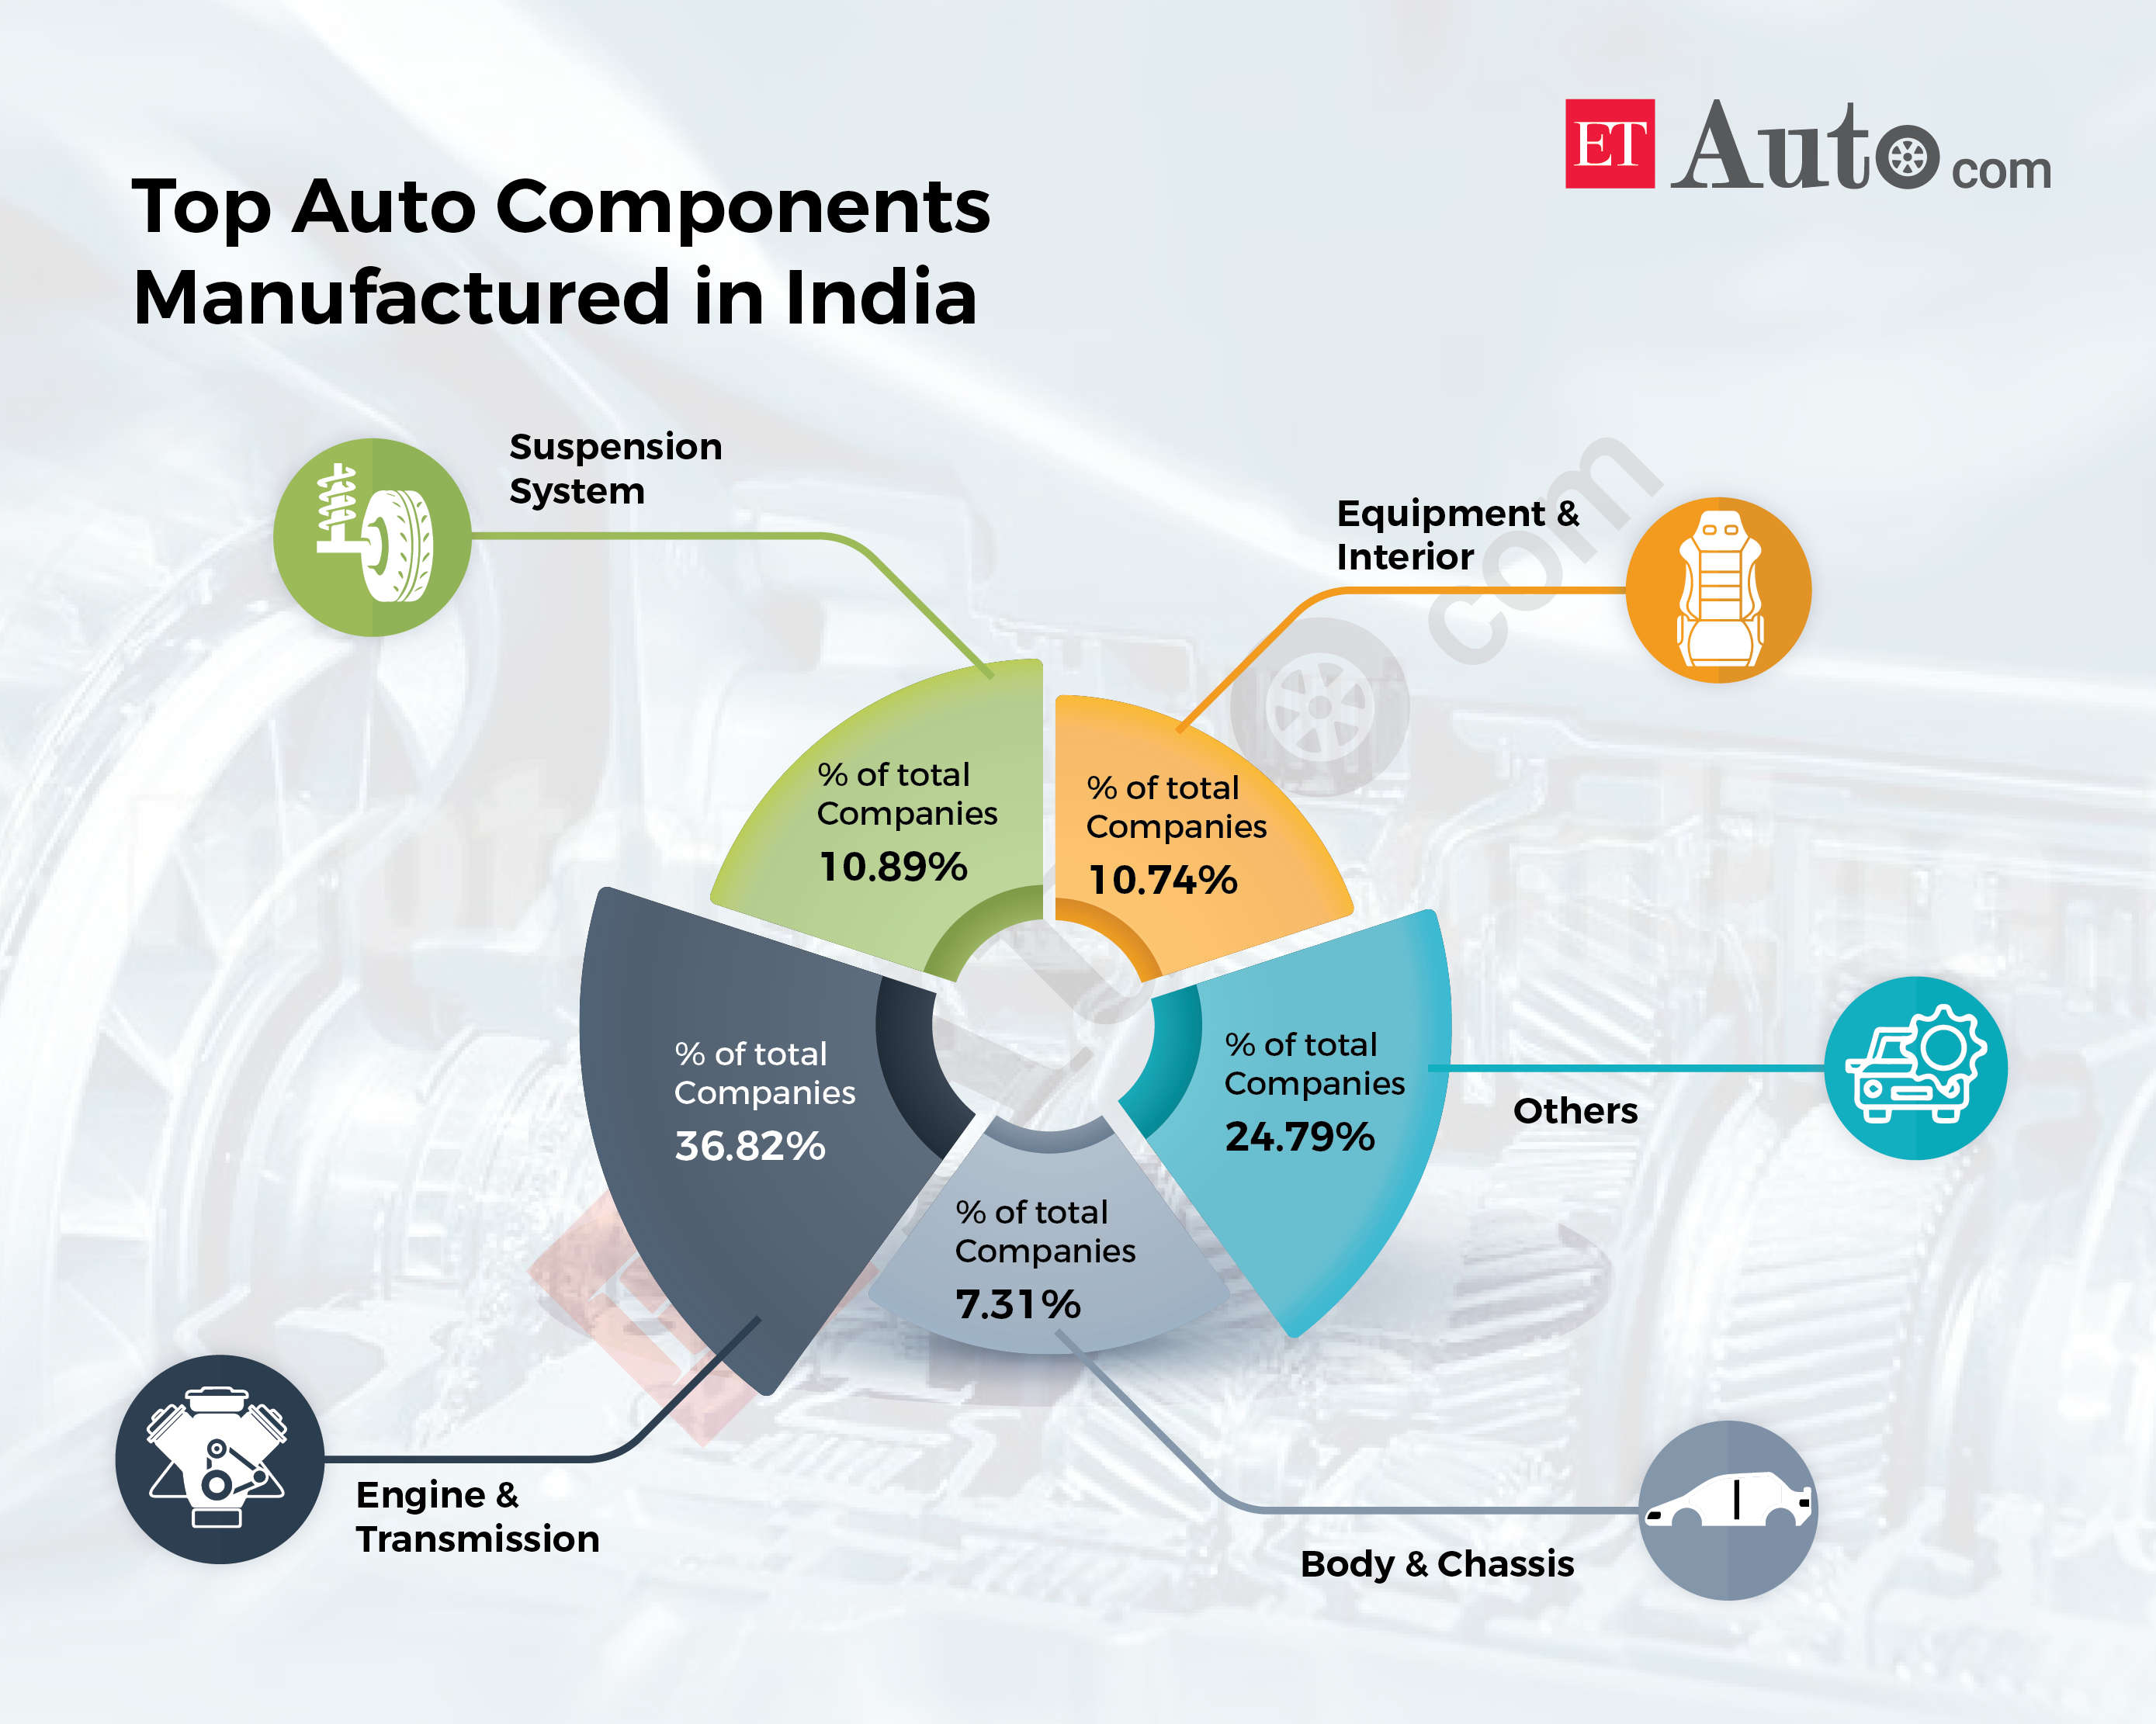 In the country's $104 billion revenue automobile industry, component makers account for more than half at $57 billion.